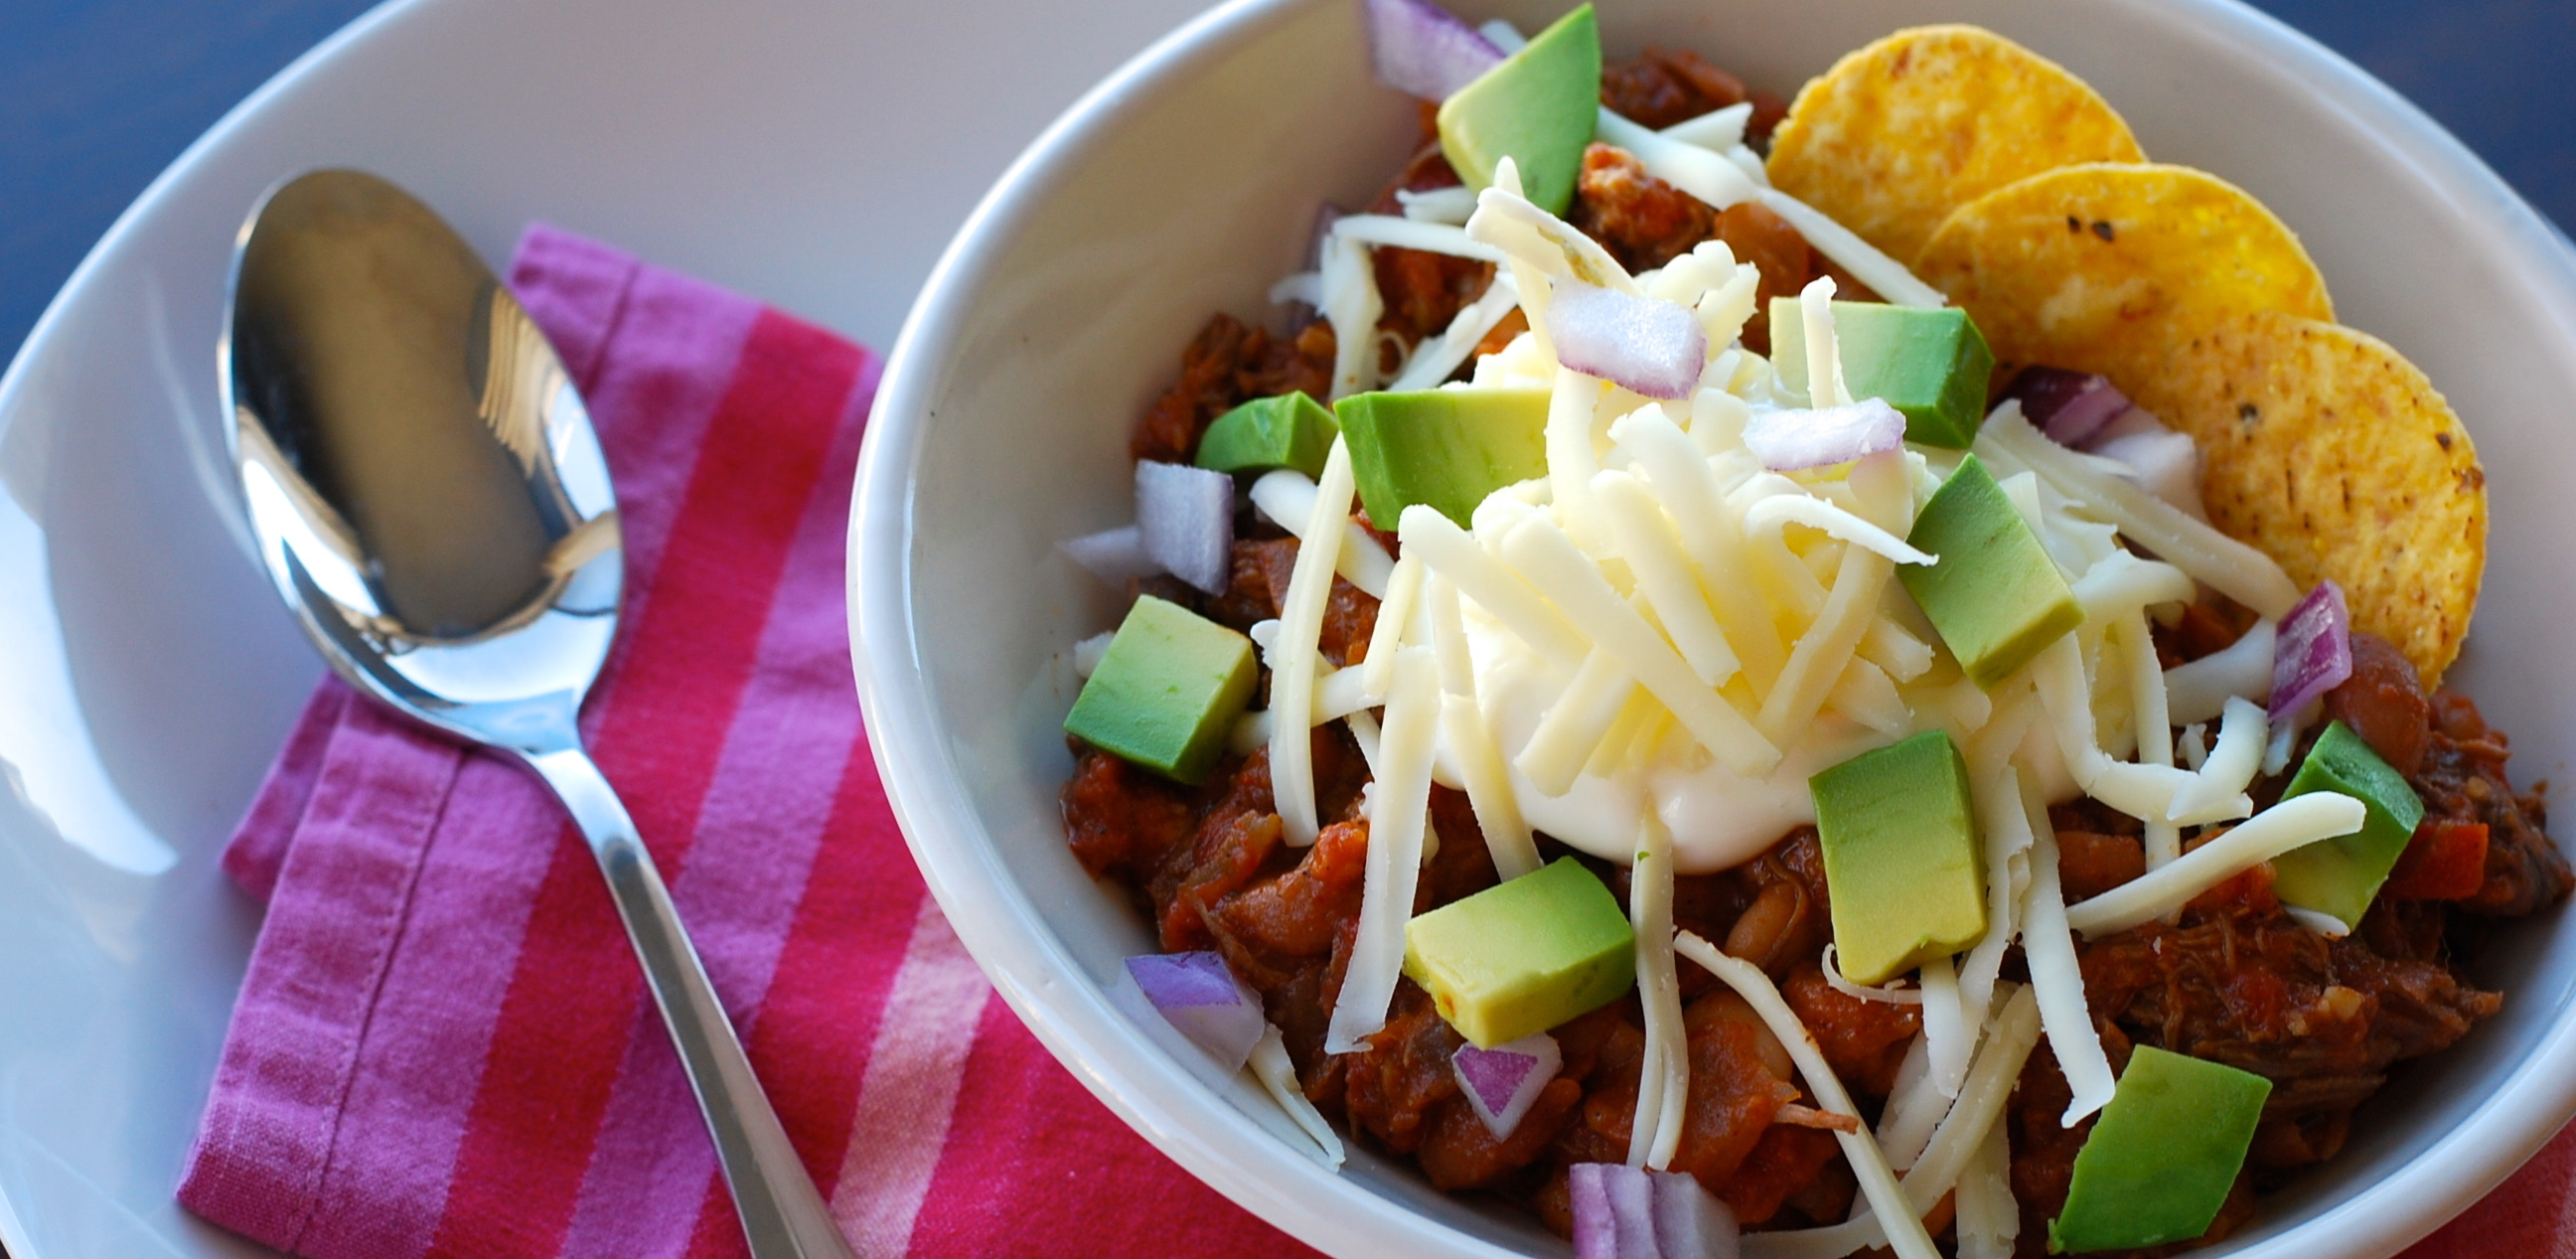 Your Winter Warmup: Slow Cooker Shredded Beef Chili